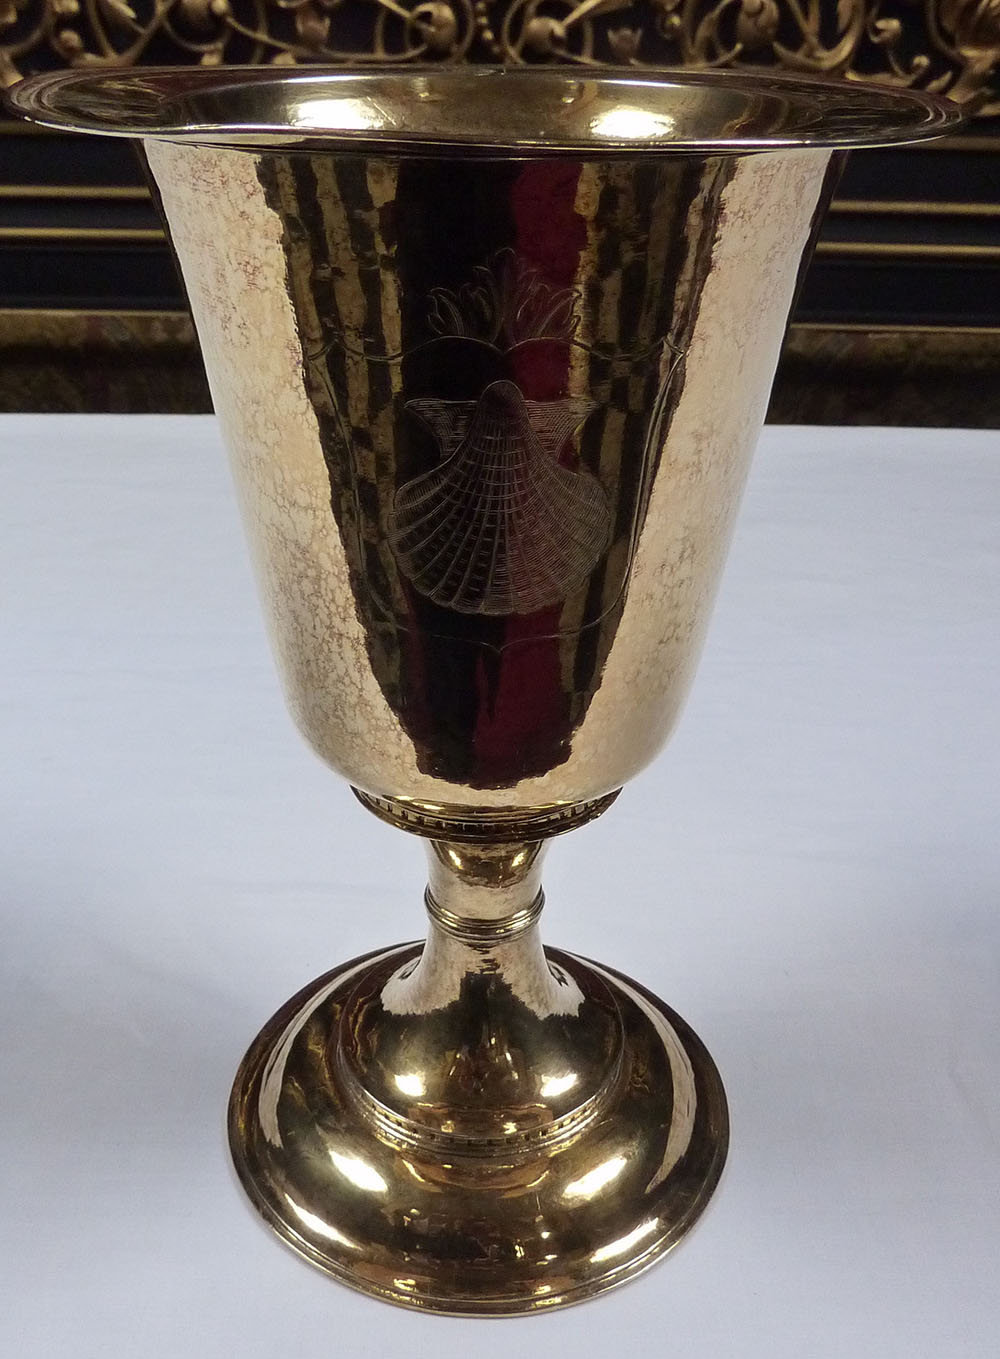 A gold chalice with a scallop carved into the front